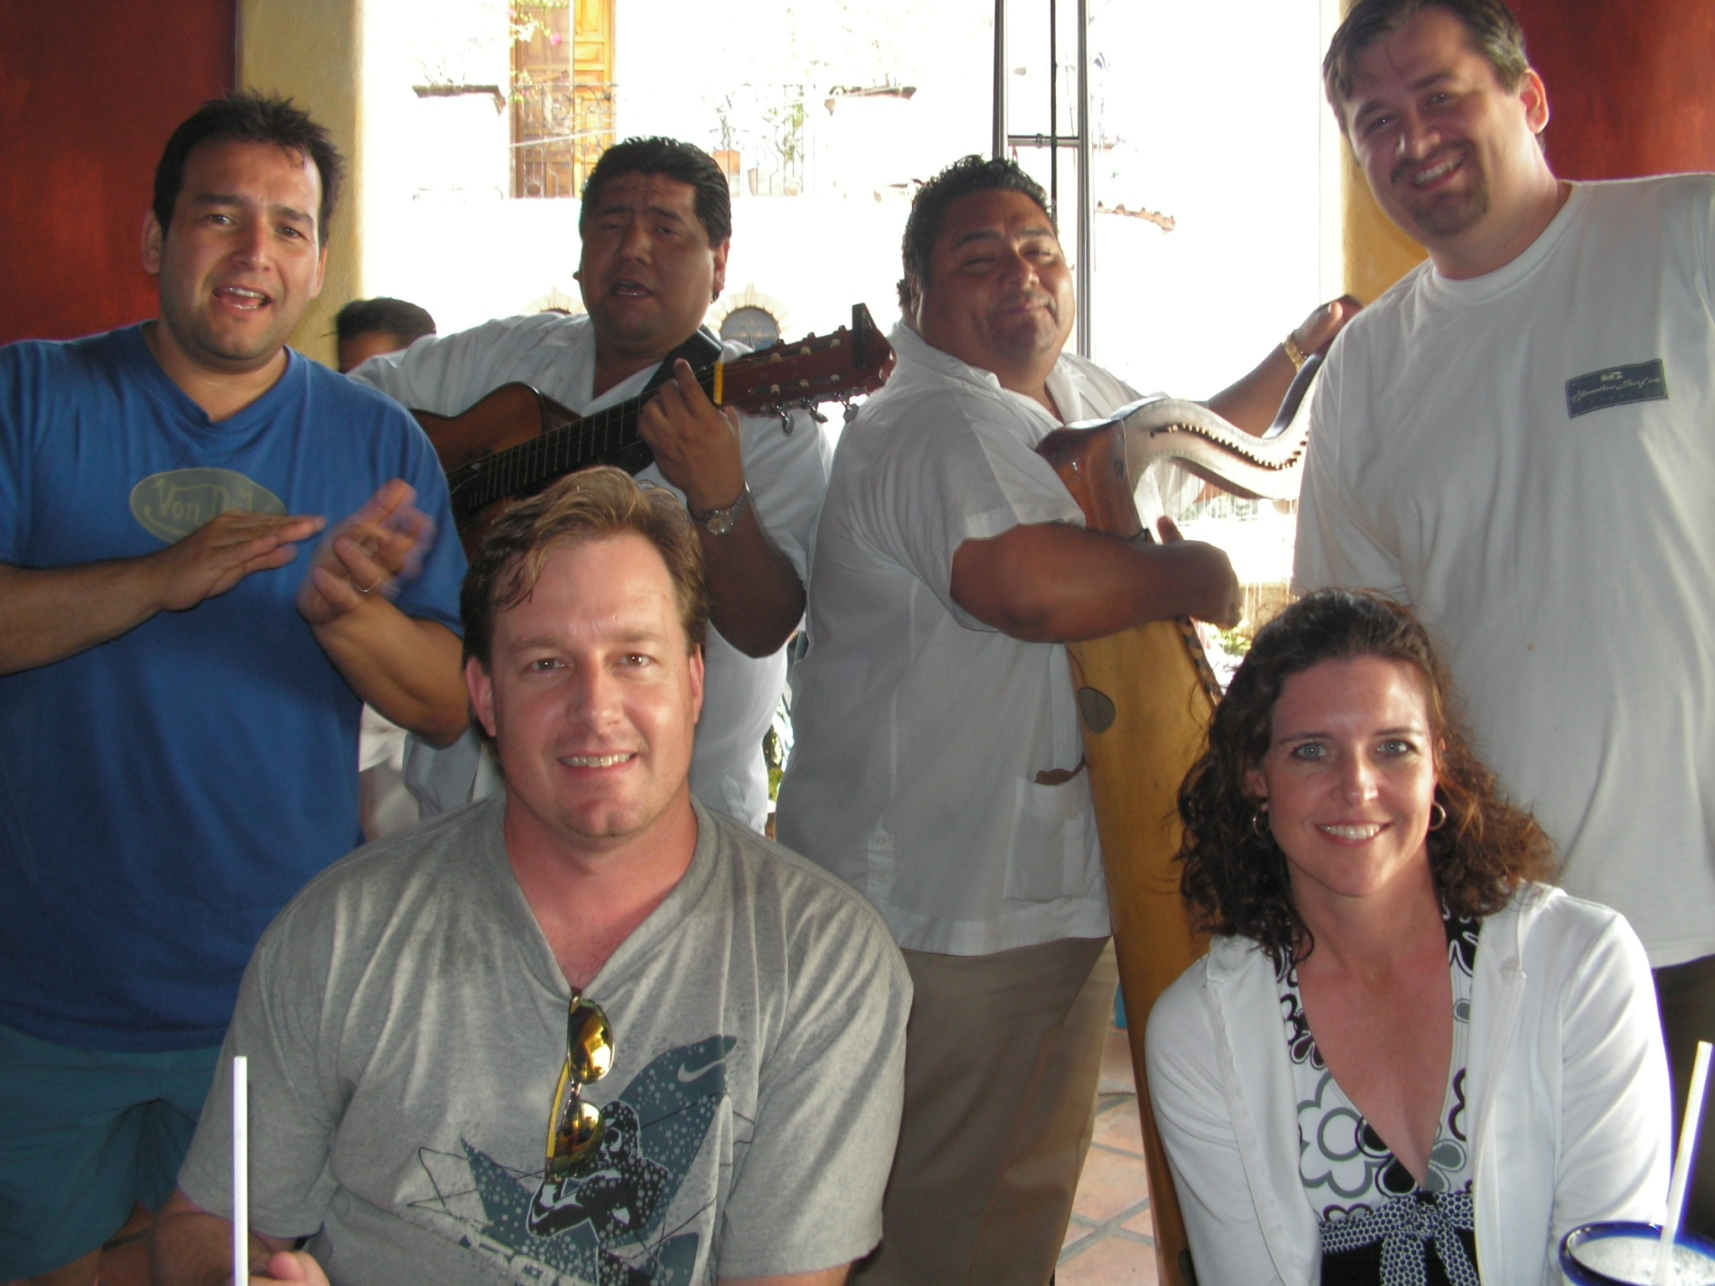 Rick and the mariachi band in puerto vallarta